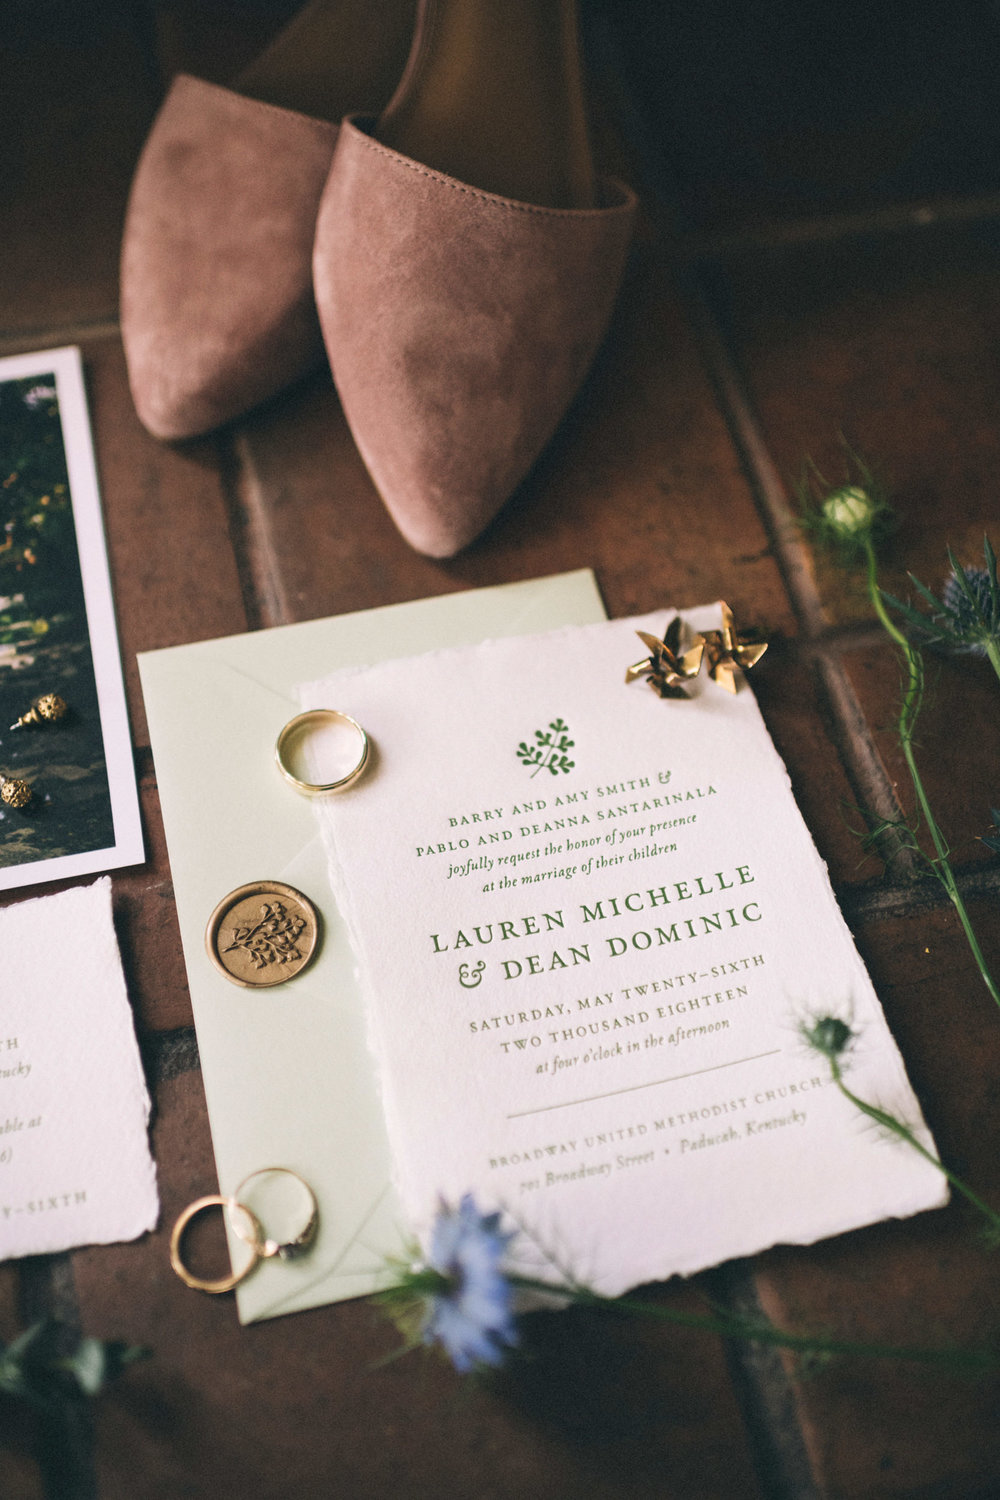 lauren-dean-wedding-grand-lodge-kentucky-sarah-katherine-davis-photography-invitation-details